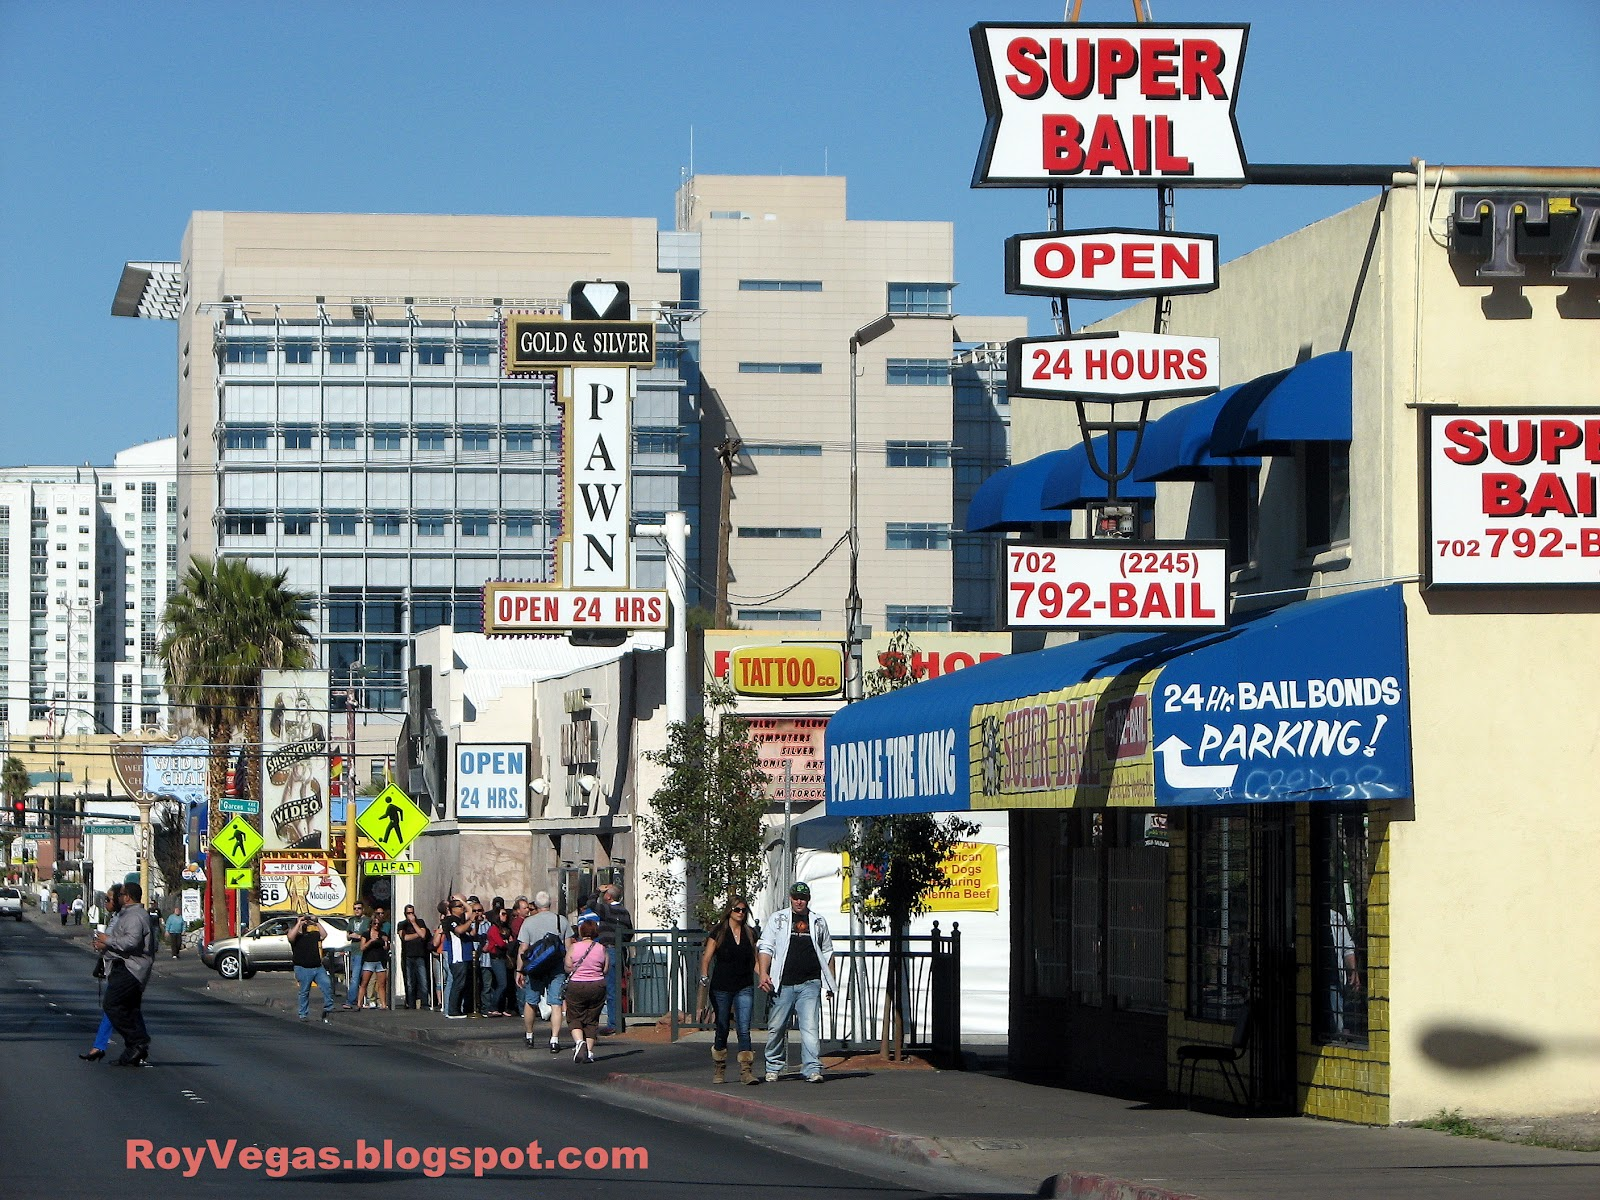 pawn shop Home of the hit tv show pawn stars we specialize in rare collectibles, art and memorabilia shop our vast array of historical artifacts, fine art, jewelry and more.